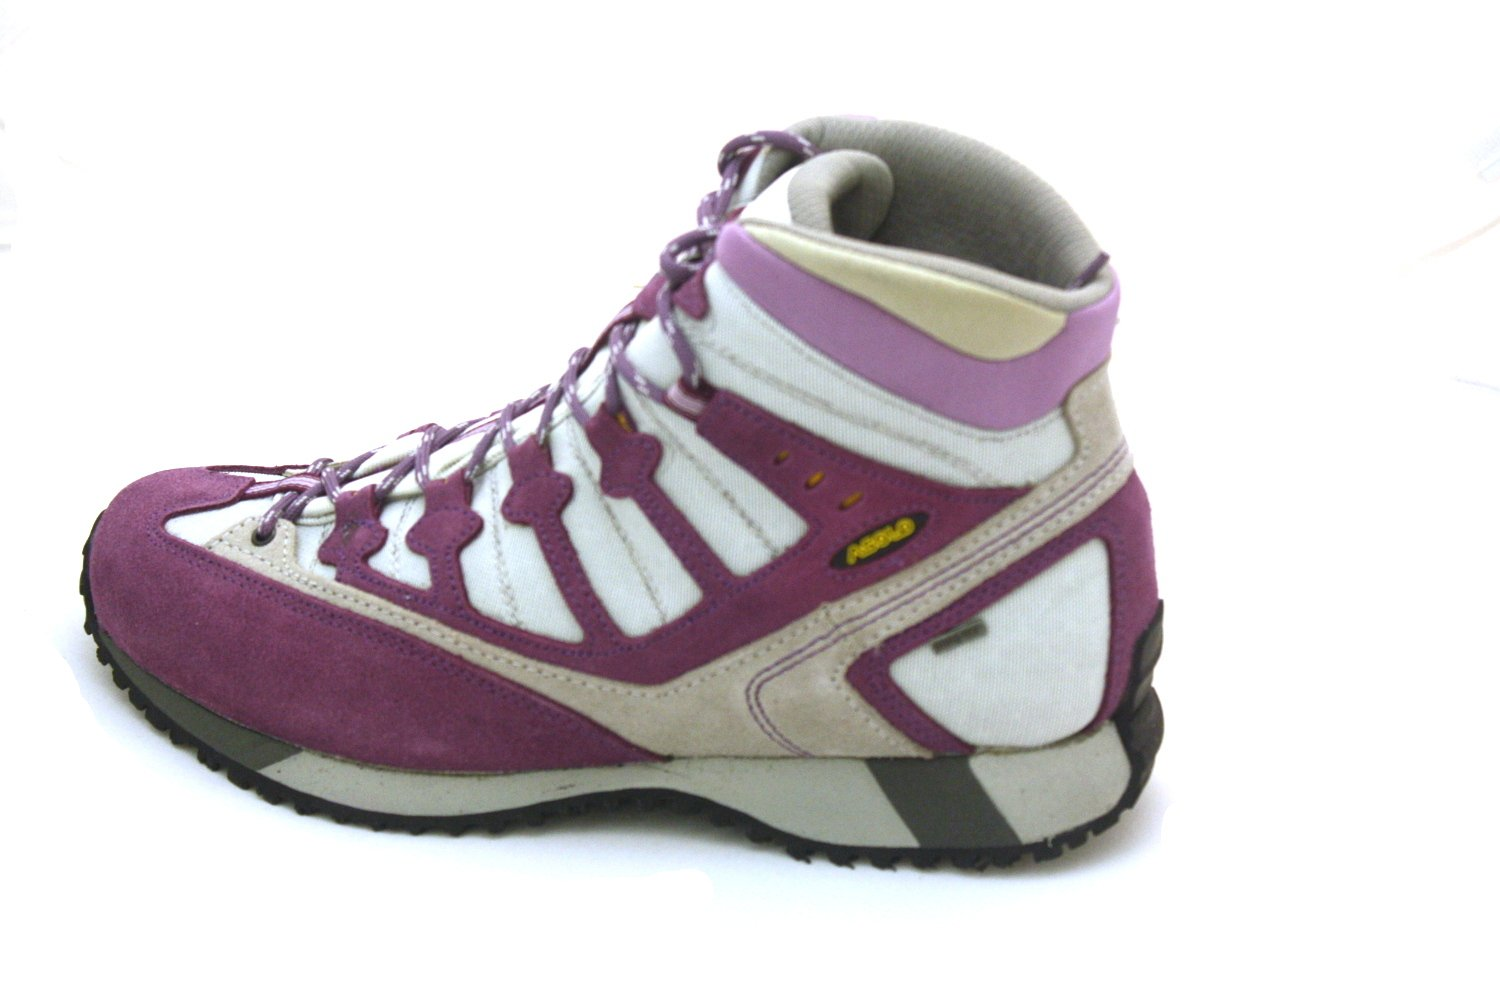 Asolo Smarty Gore-Tex Hiking Boots - Waterproof (for Women) B01KW8WN7W 9 B(M) US|Grapeade.ice